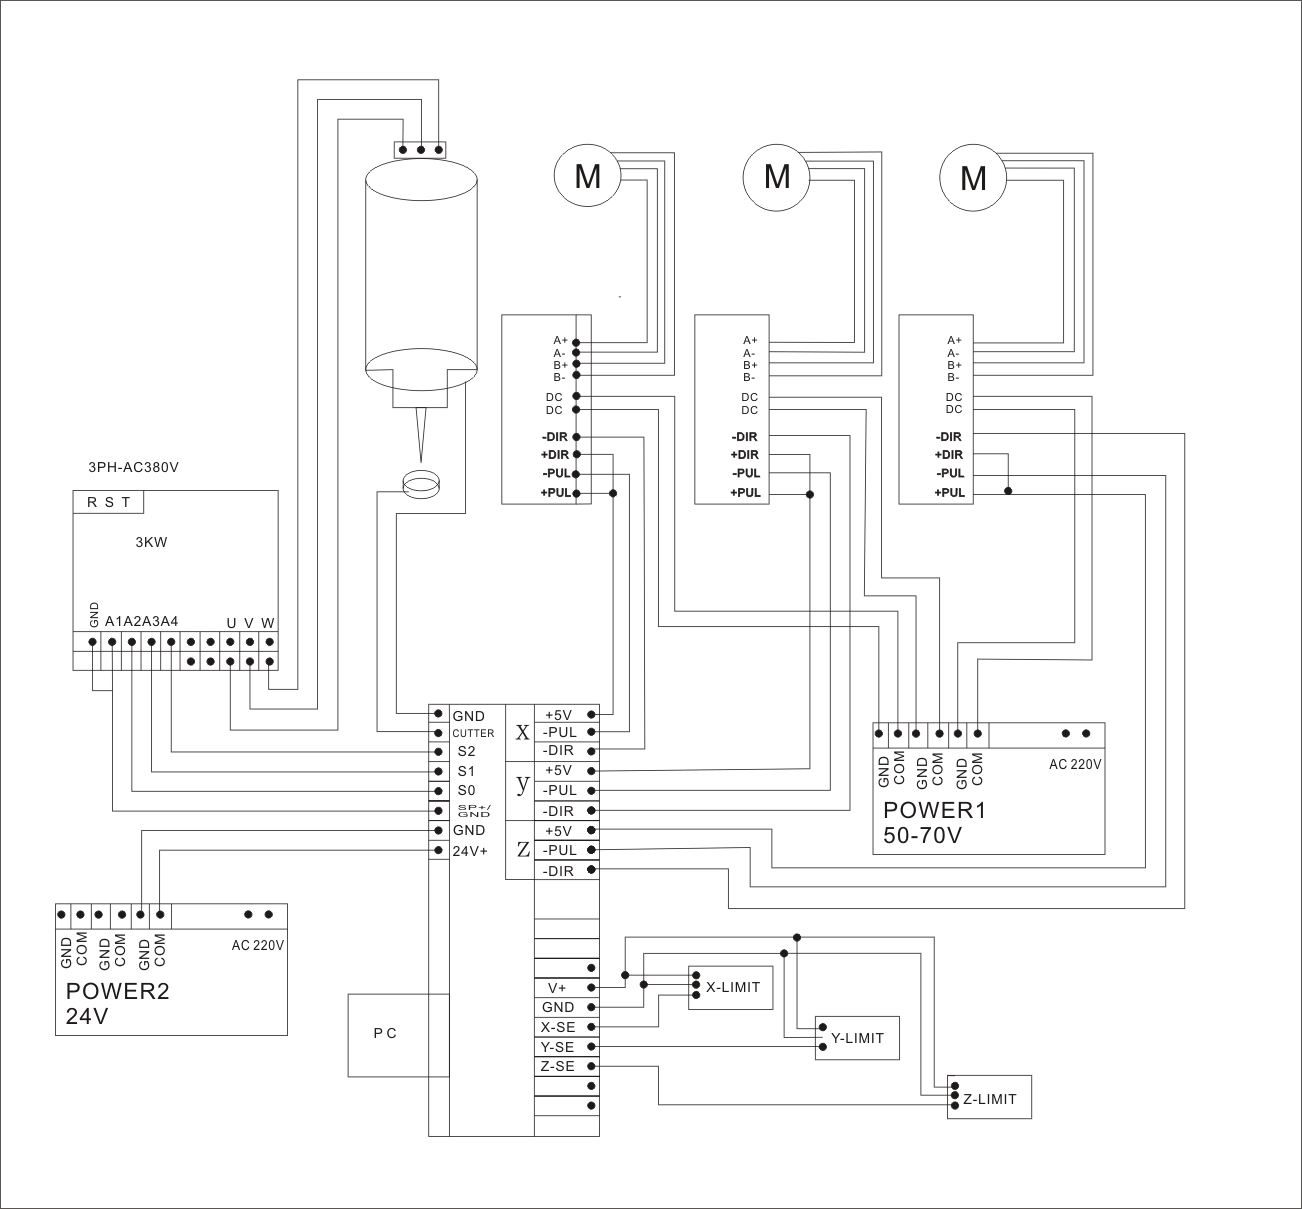 Cnc Circuit Diagram Great Design Of Wiring 4 Axis Fanuc Motor Diagrams 20 Images Machine Pdf